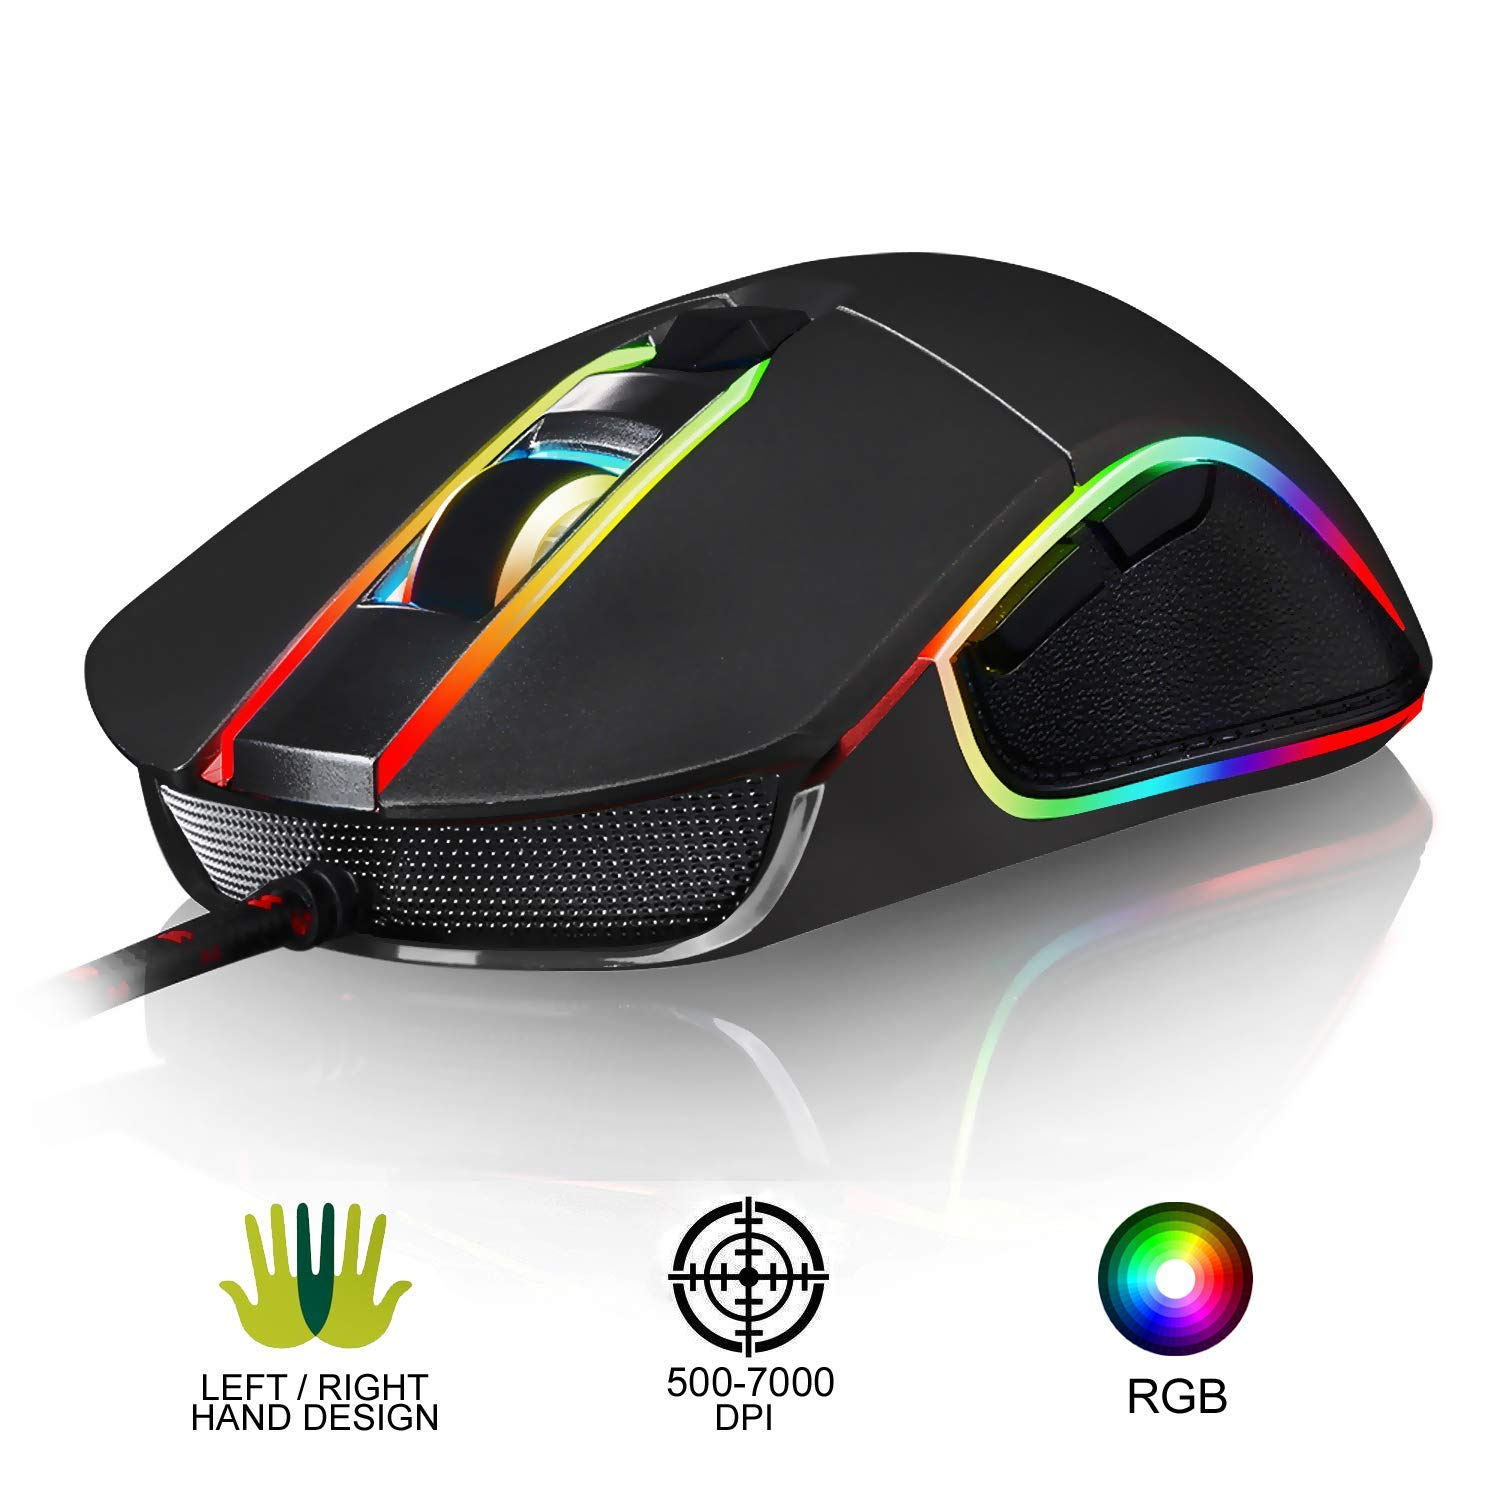 KLIM AIM (Best affordable ambidextrous gaming mouse)